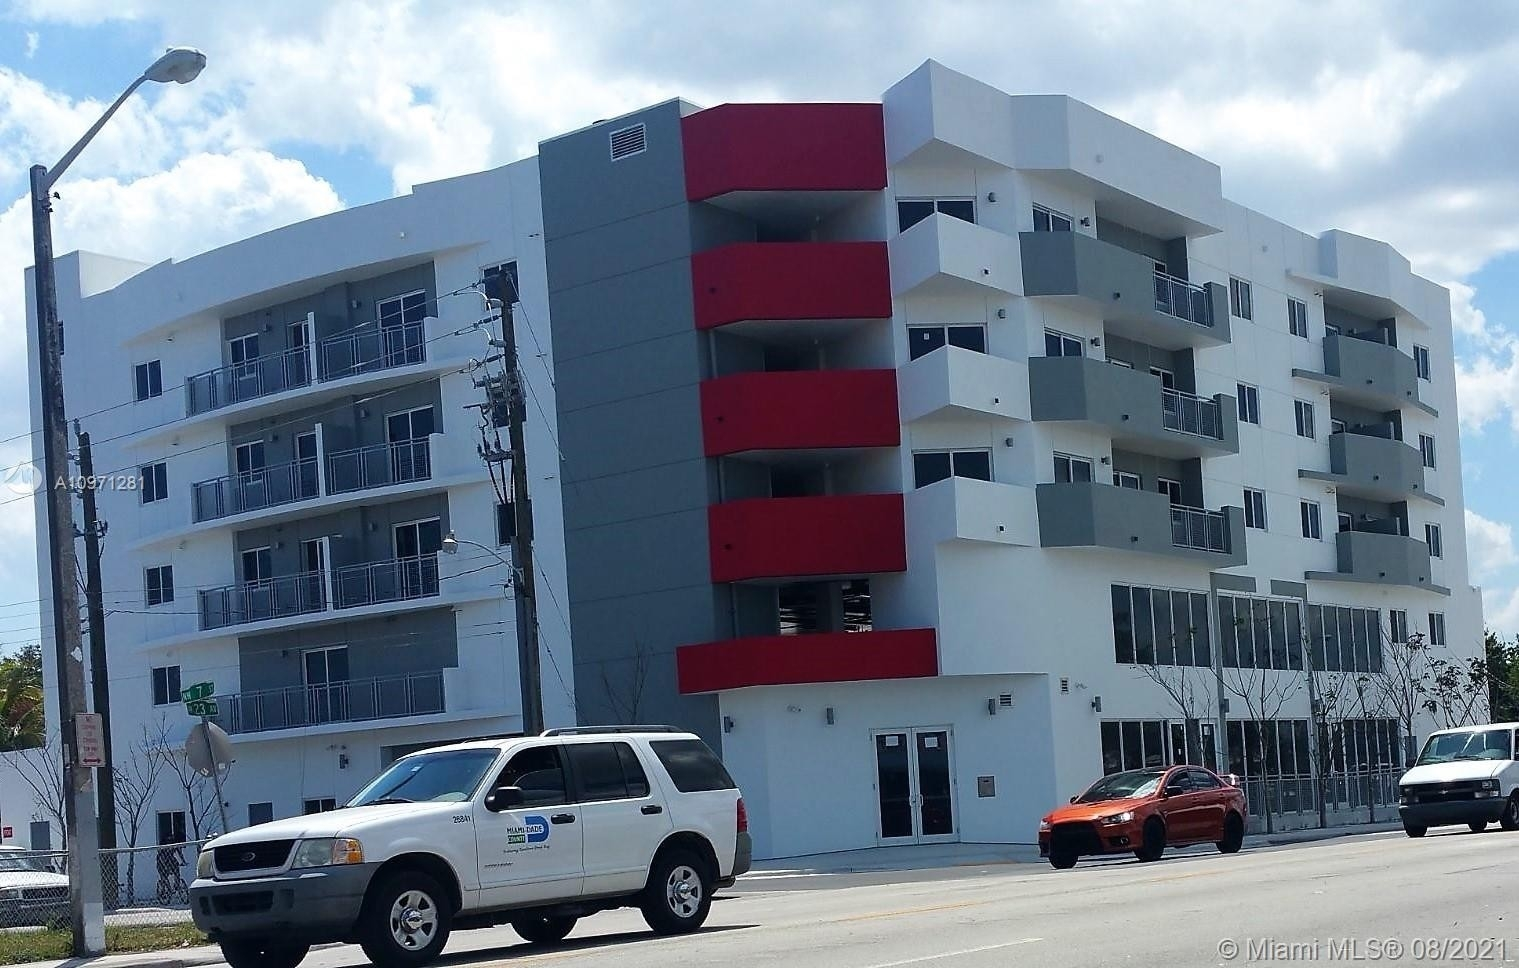 Multi Family Townhouse for Sale at City Line Park, Miami, FL 33125